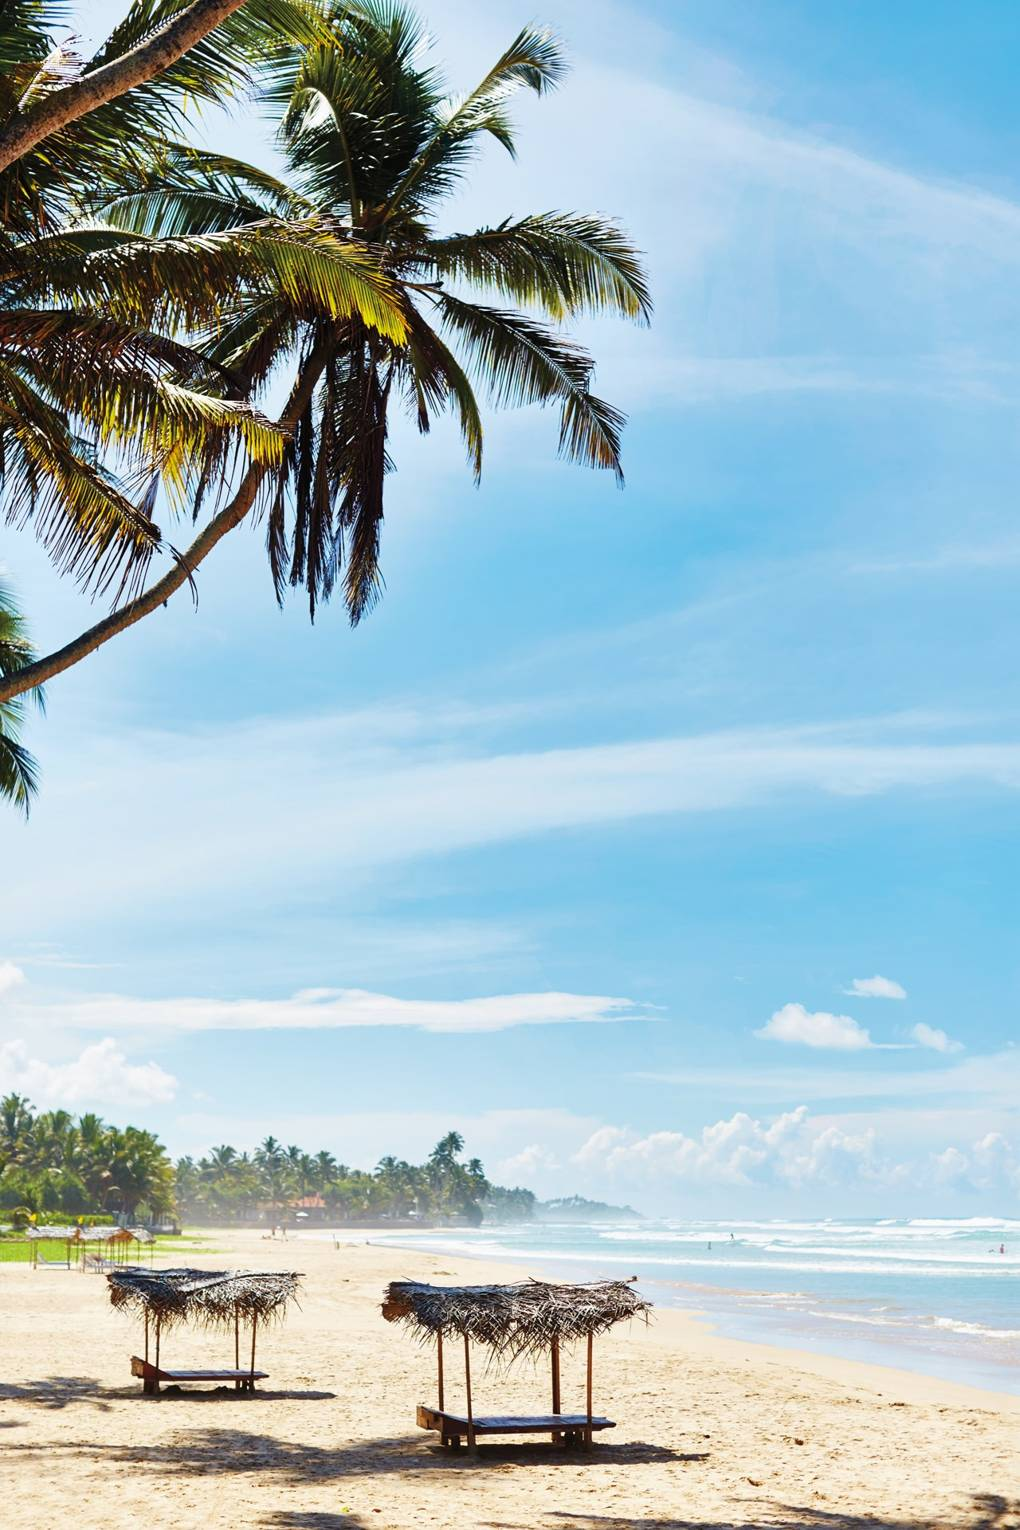 Sri Lanka's south coast - guide to the best beaches, restaurants and